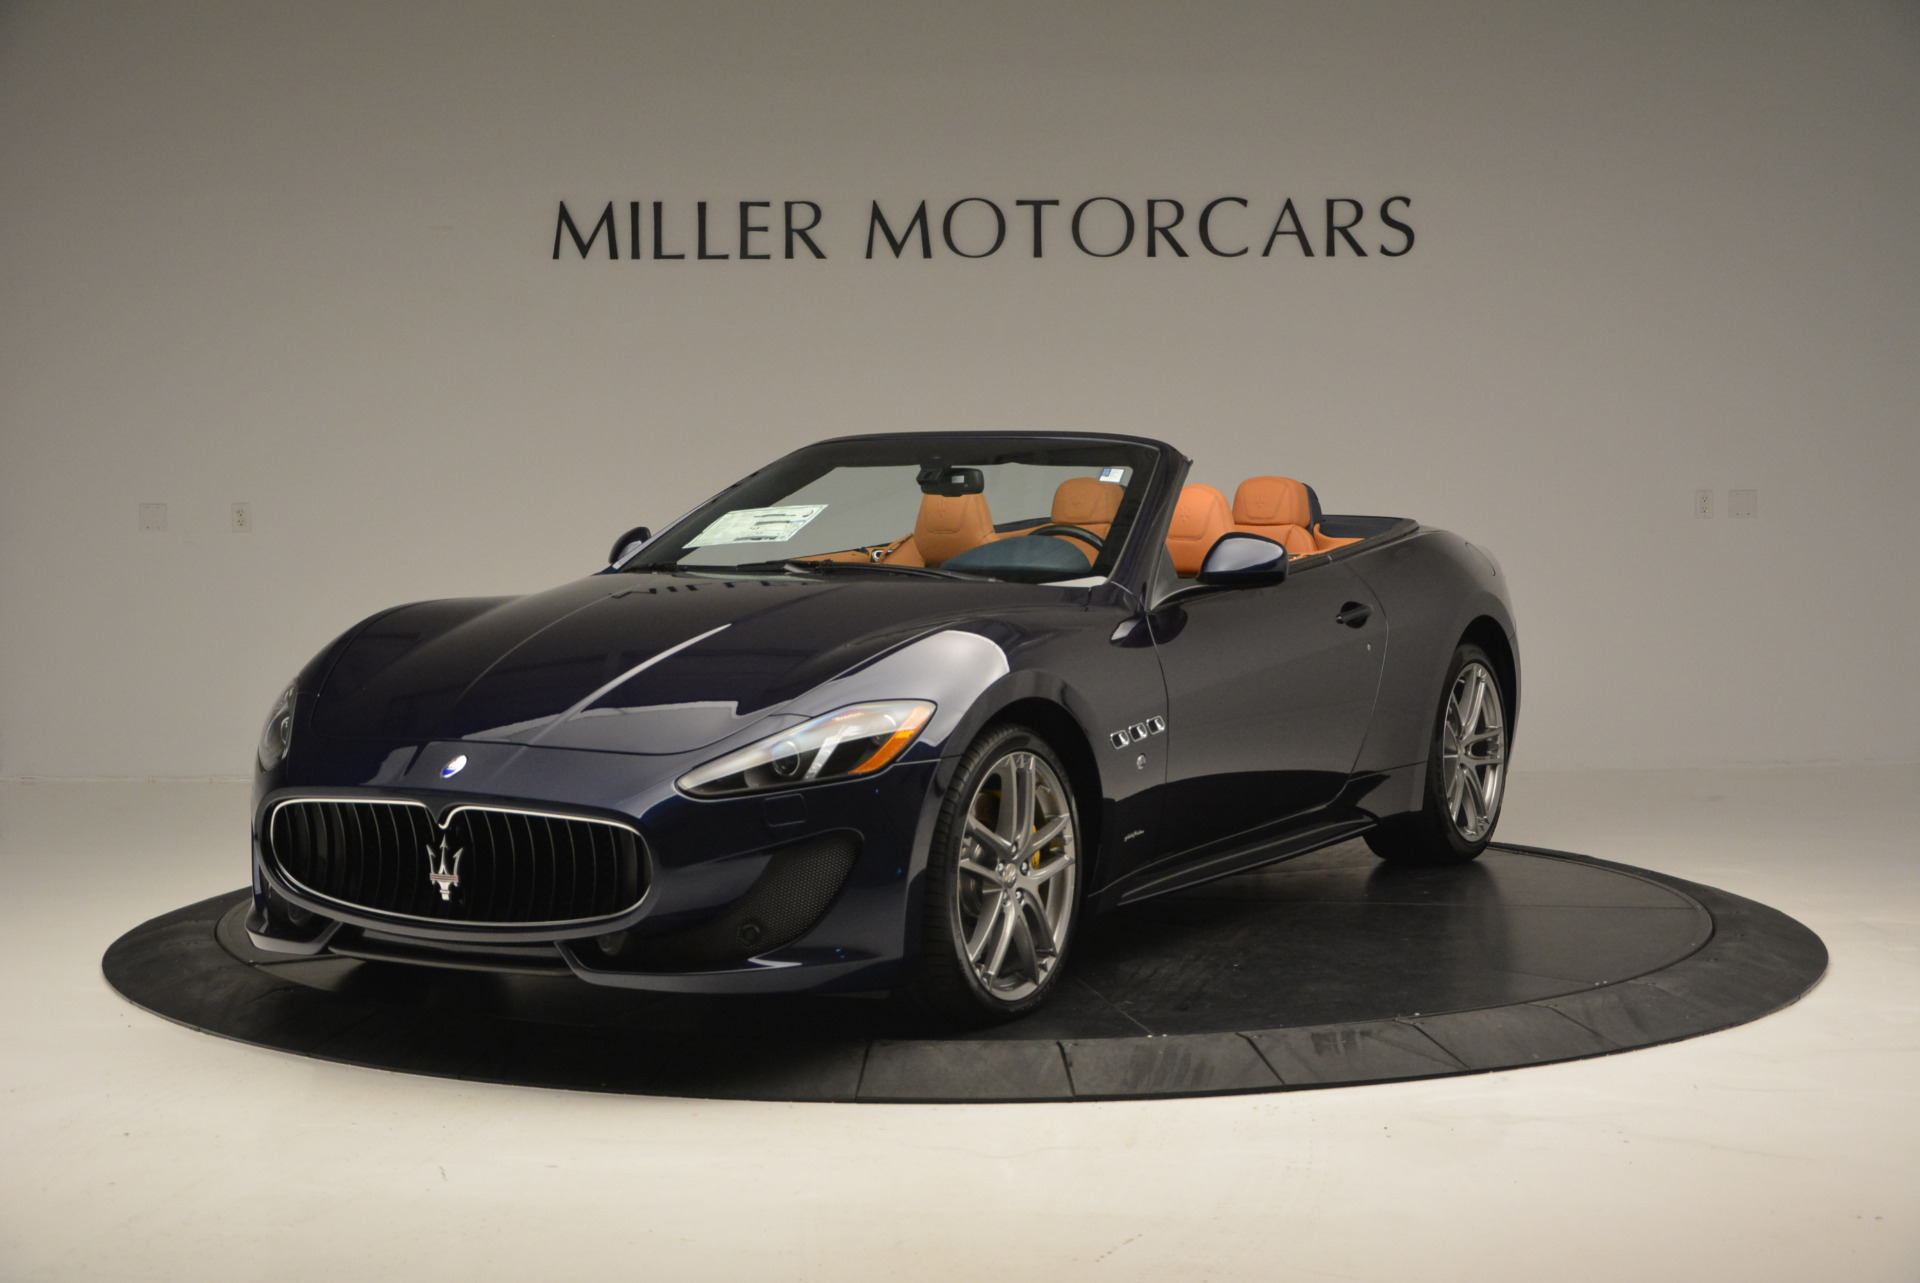 New 2017 Maserati GranTurismo Sport for sale Sold at Rolls-Royce Motor Cars Greenwich in Greenwich CT 06830 1